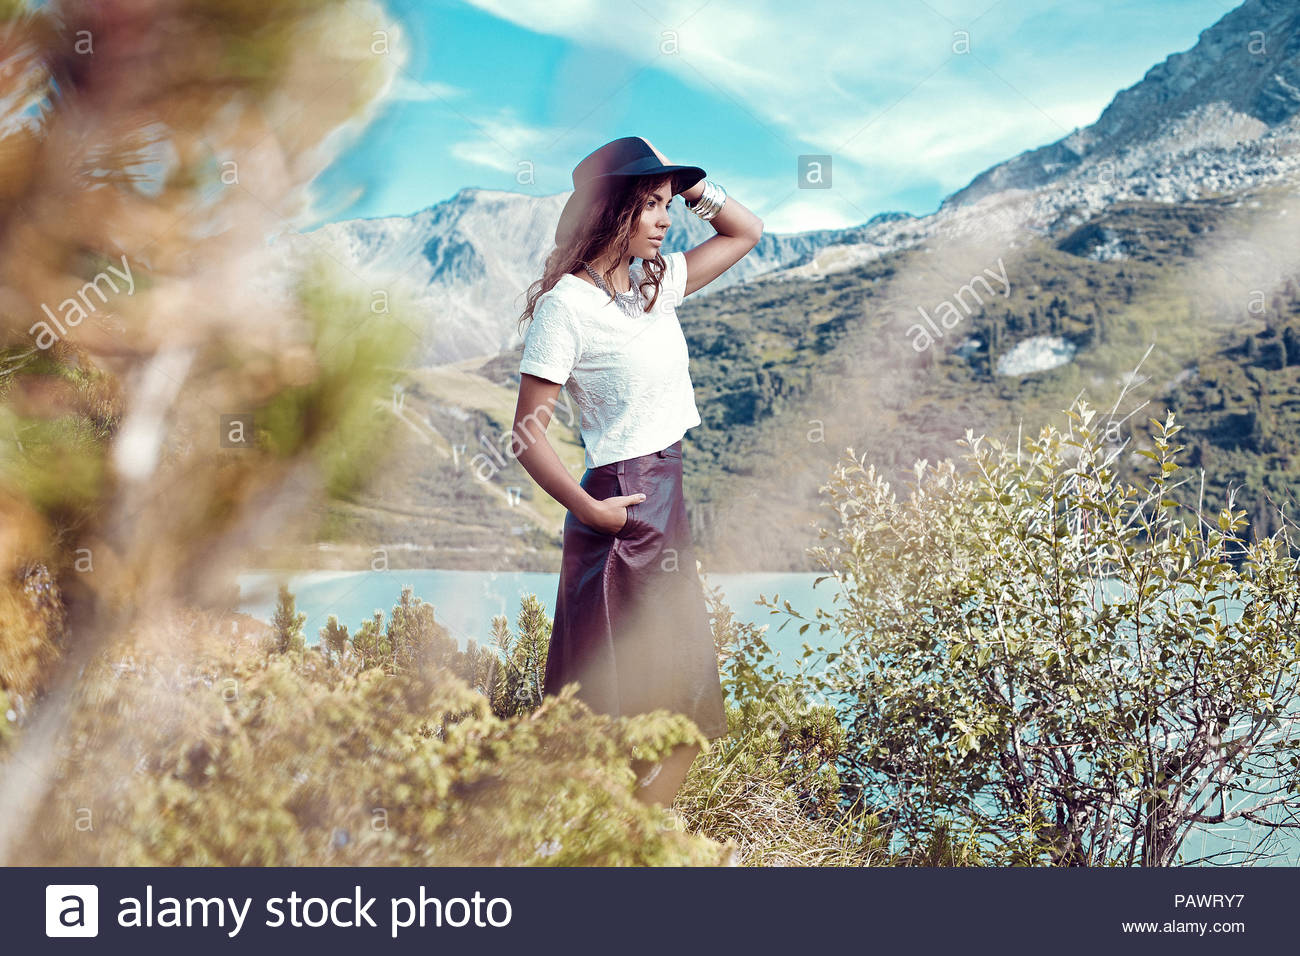 A woman in casual clothing posing on a field on a sunny day - Stock Image